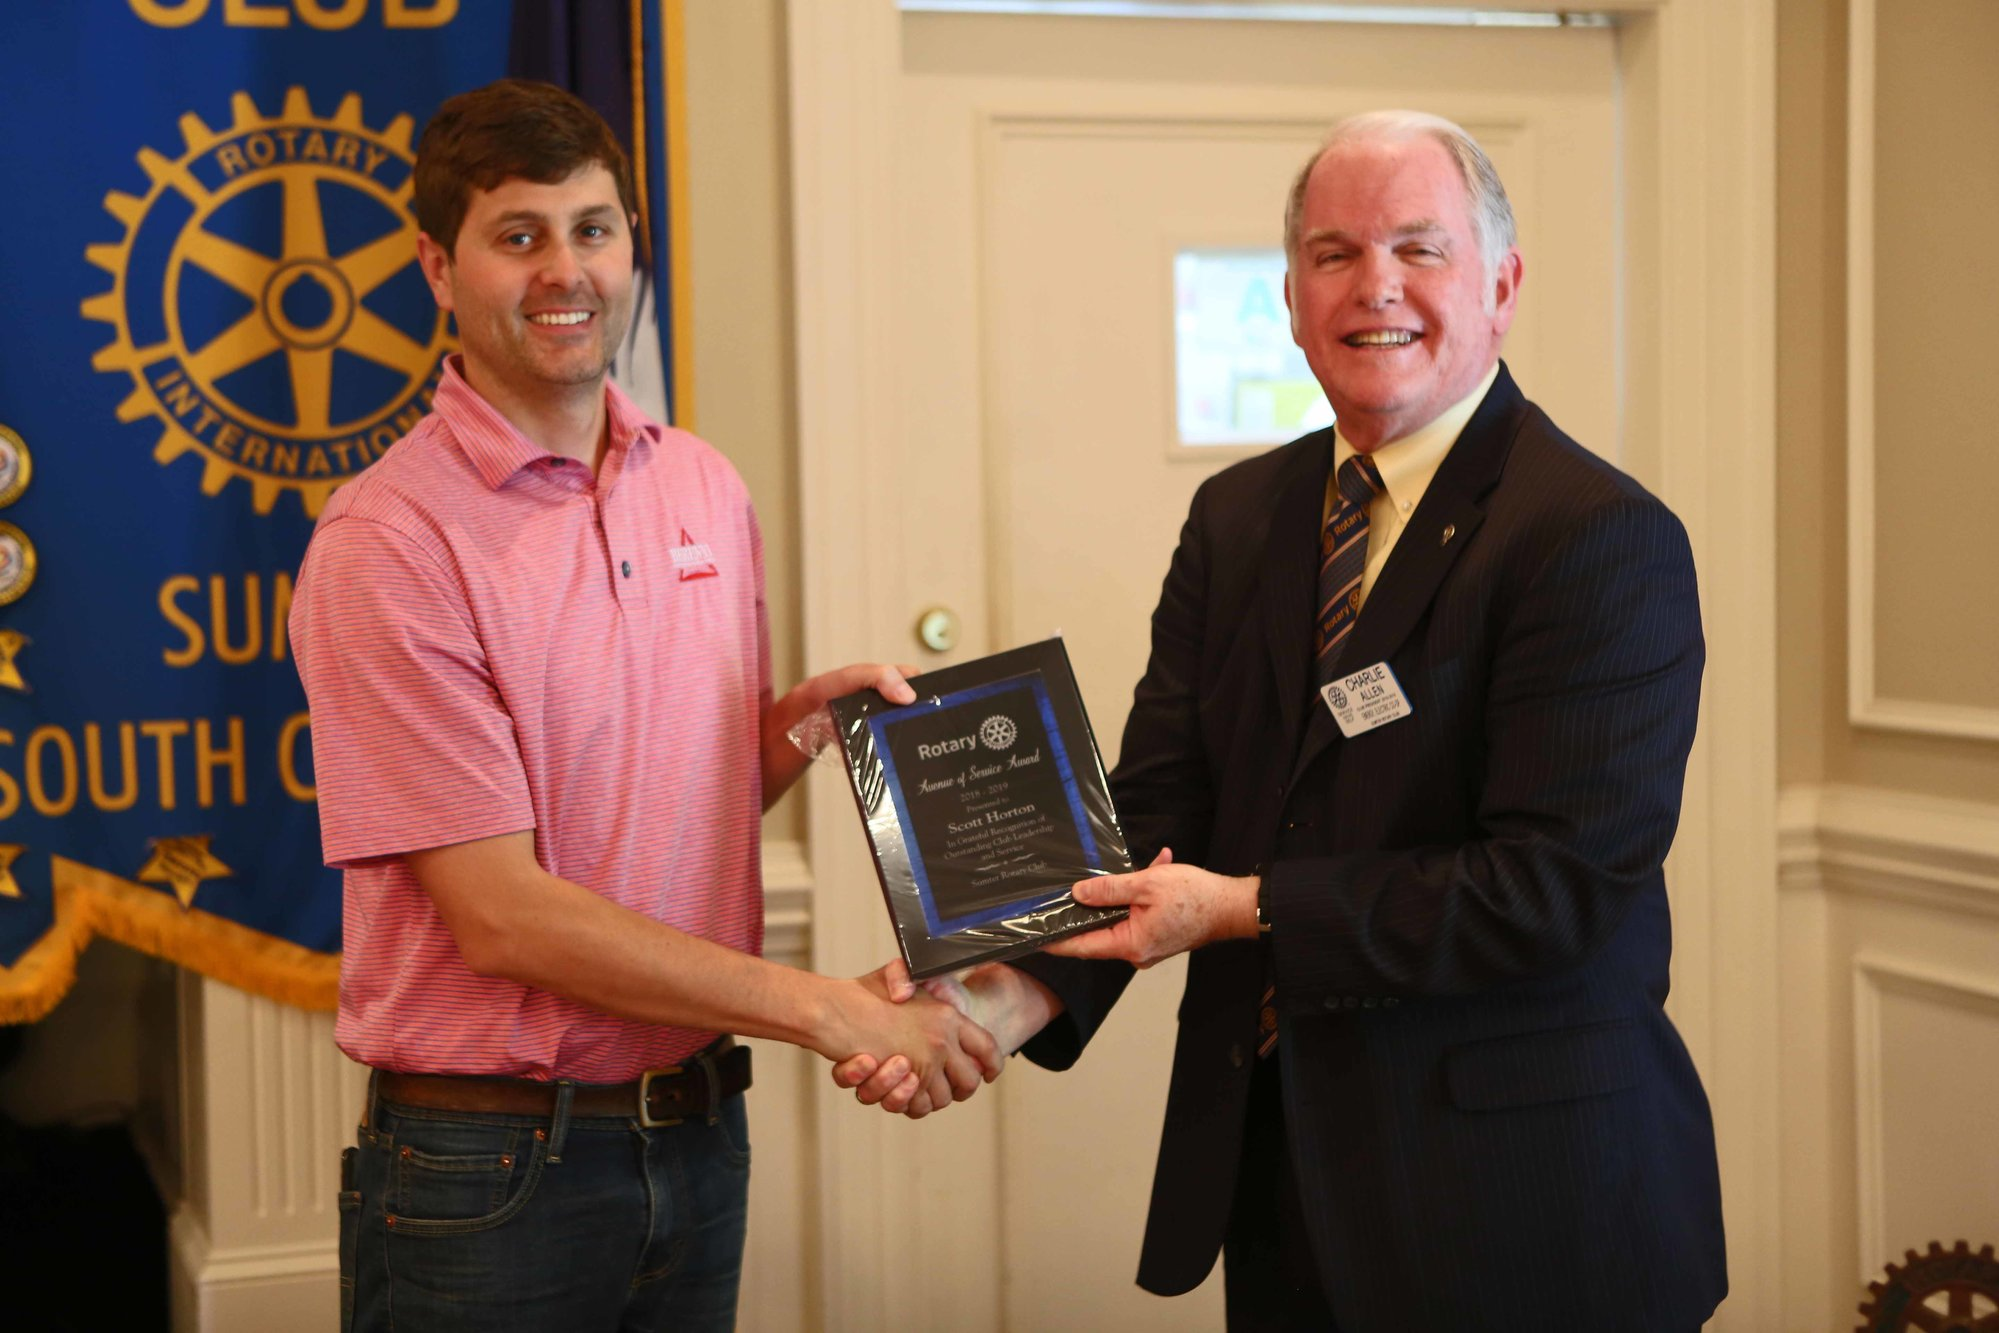 Scott Horton, left, receives the Avenue of Service Award from Sumter Rotary Club President Charlie Allen.